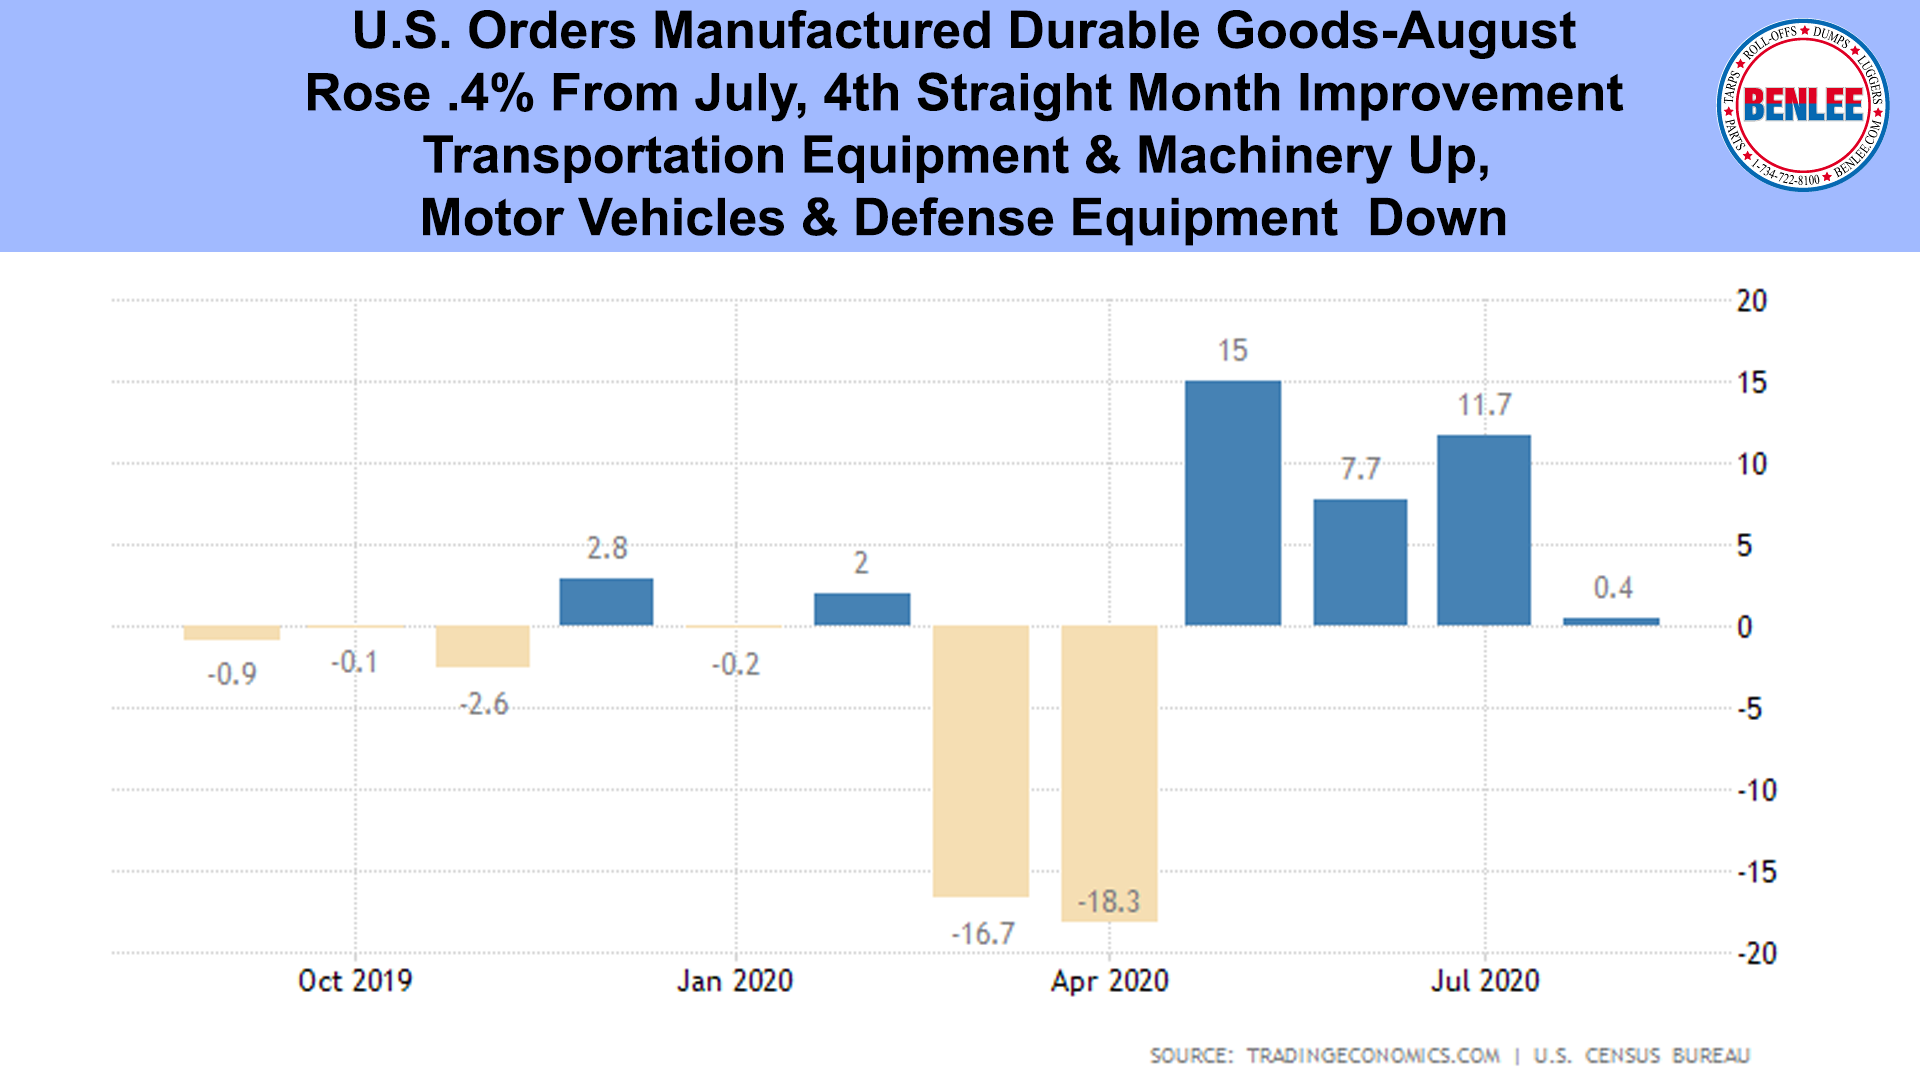 U.S. Orders Manufactured Durable Goods